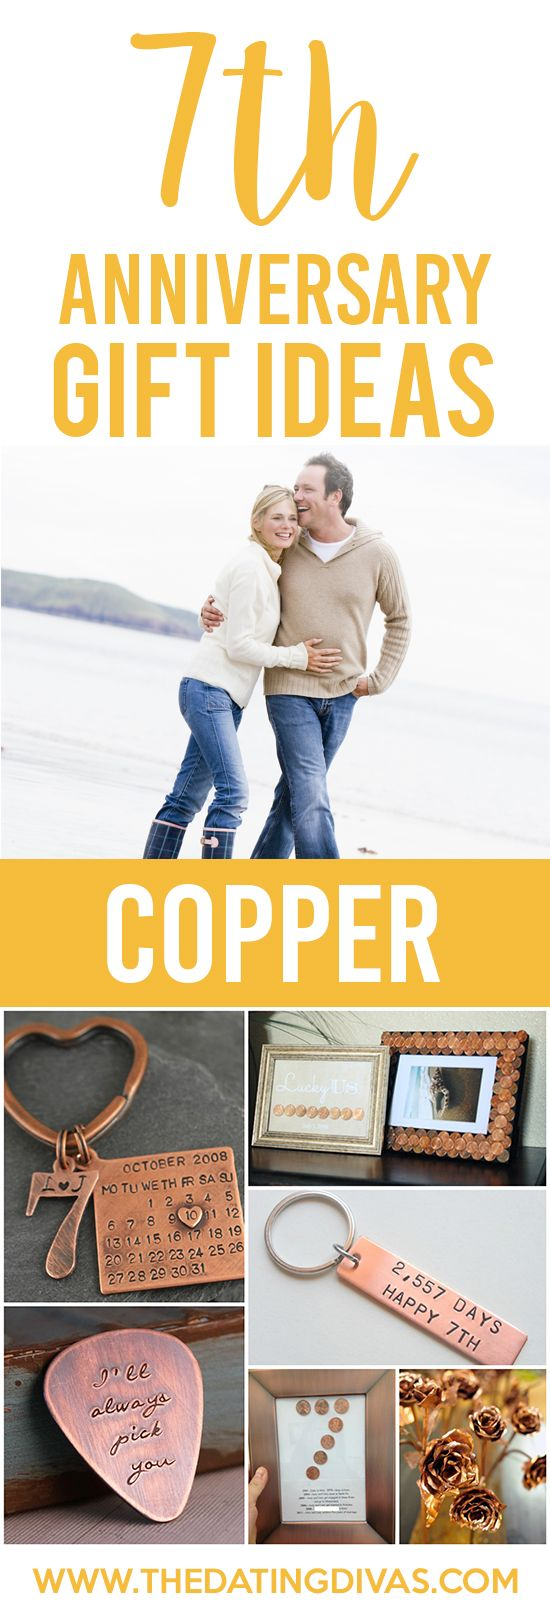 7th Anniversary Gift Ideas for your COPPER anniversary! Cute- saving this for the future. I love the penny idea.